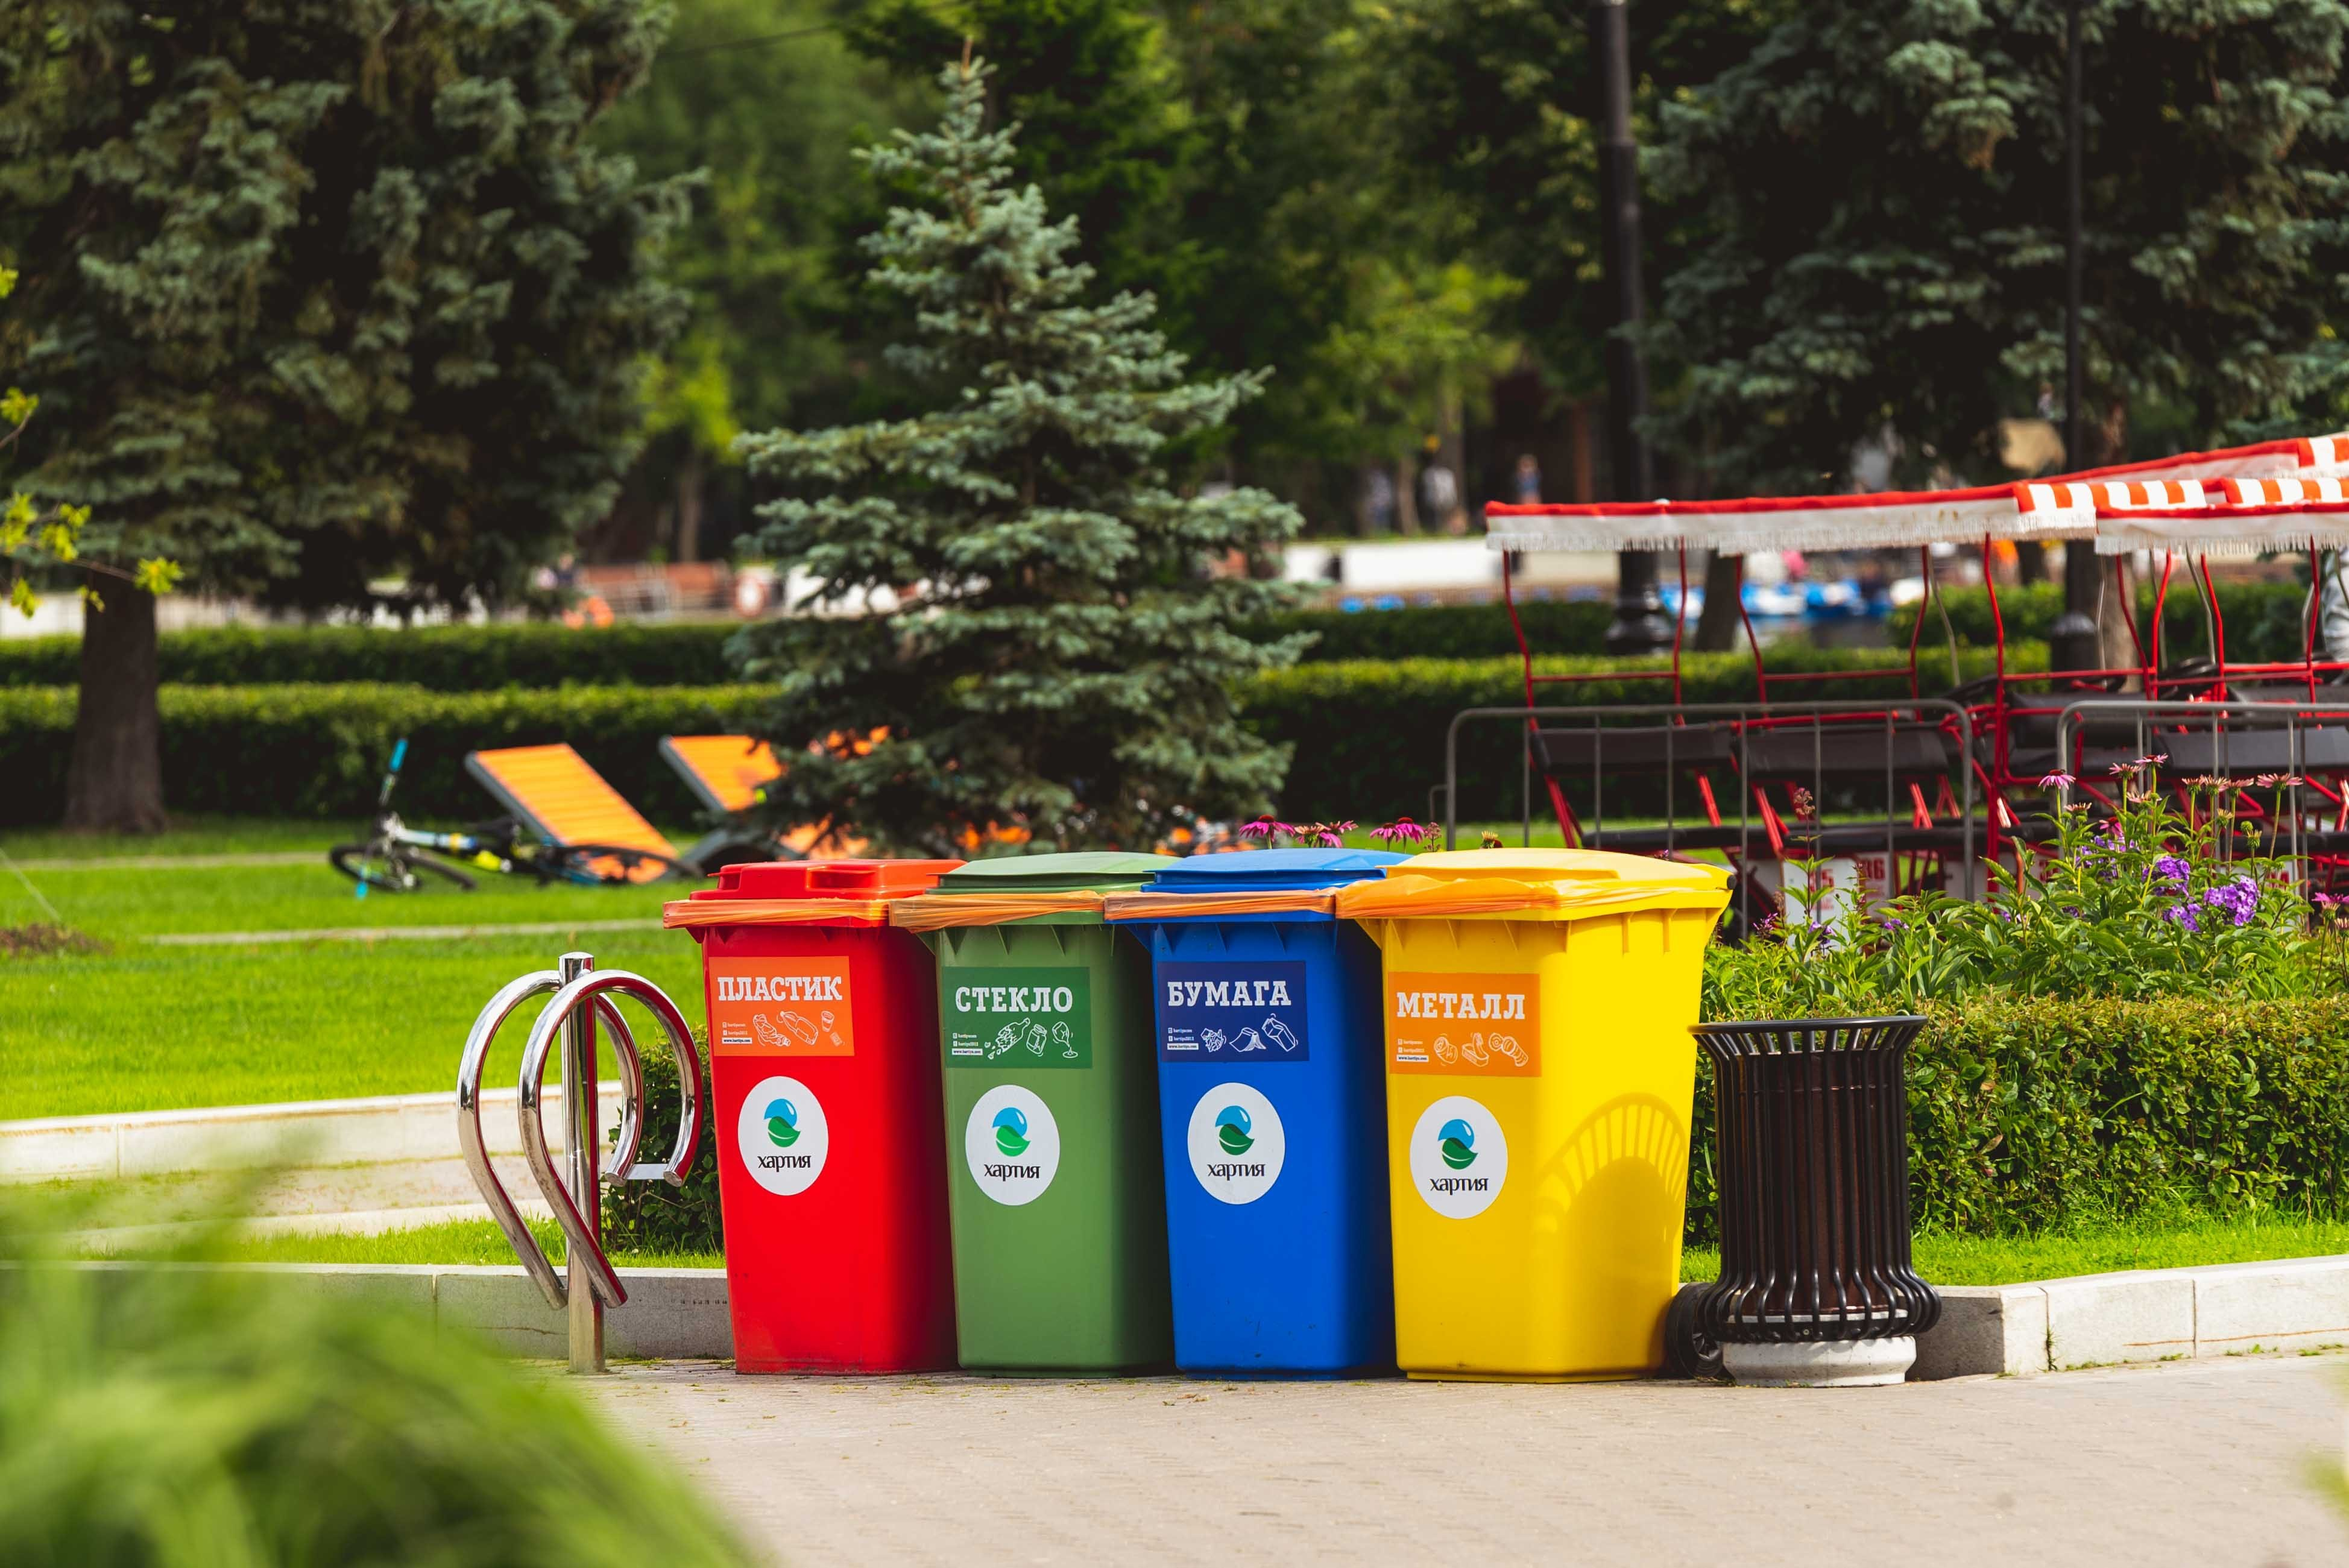 A row of multi color garbage cans, not unlike the one Elia Quezada, 7 hid inside before being dumped in a sanitation truck. | Photo: Pexel.